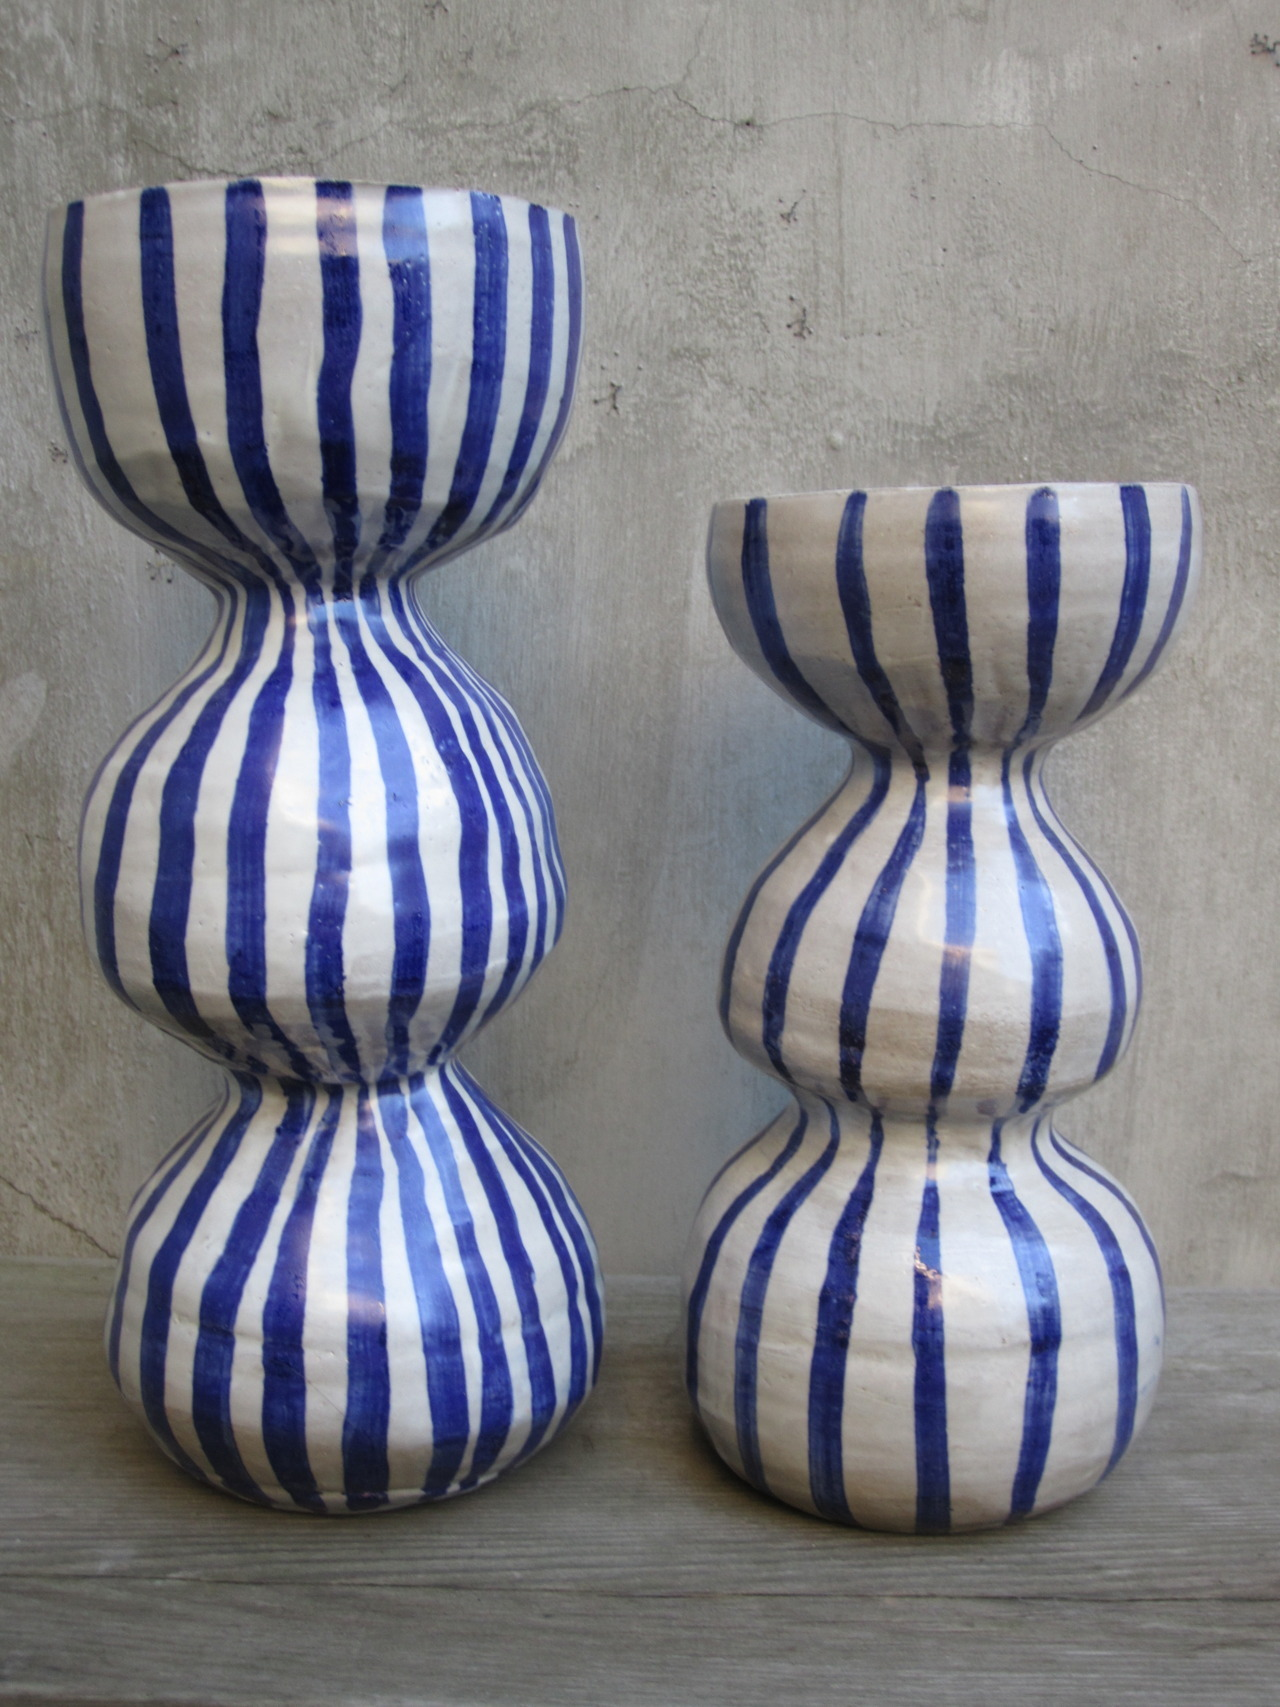 paulagreif:  blue and white striped stoneware